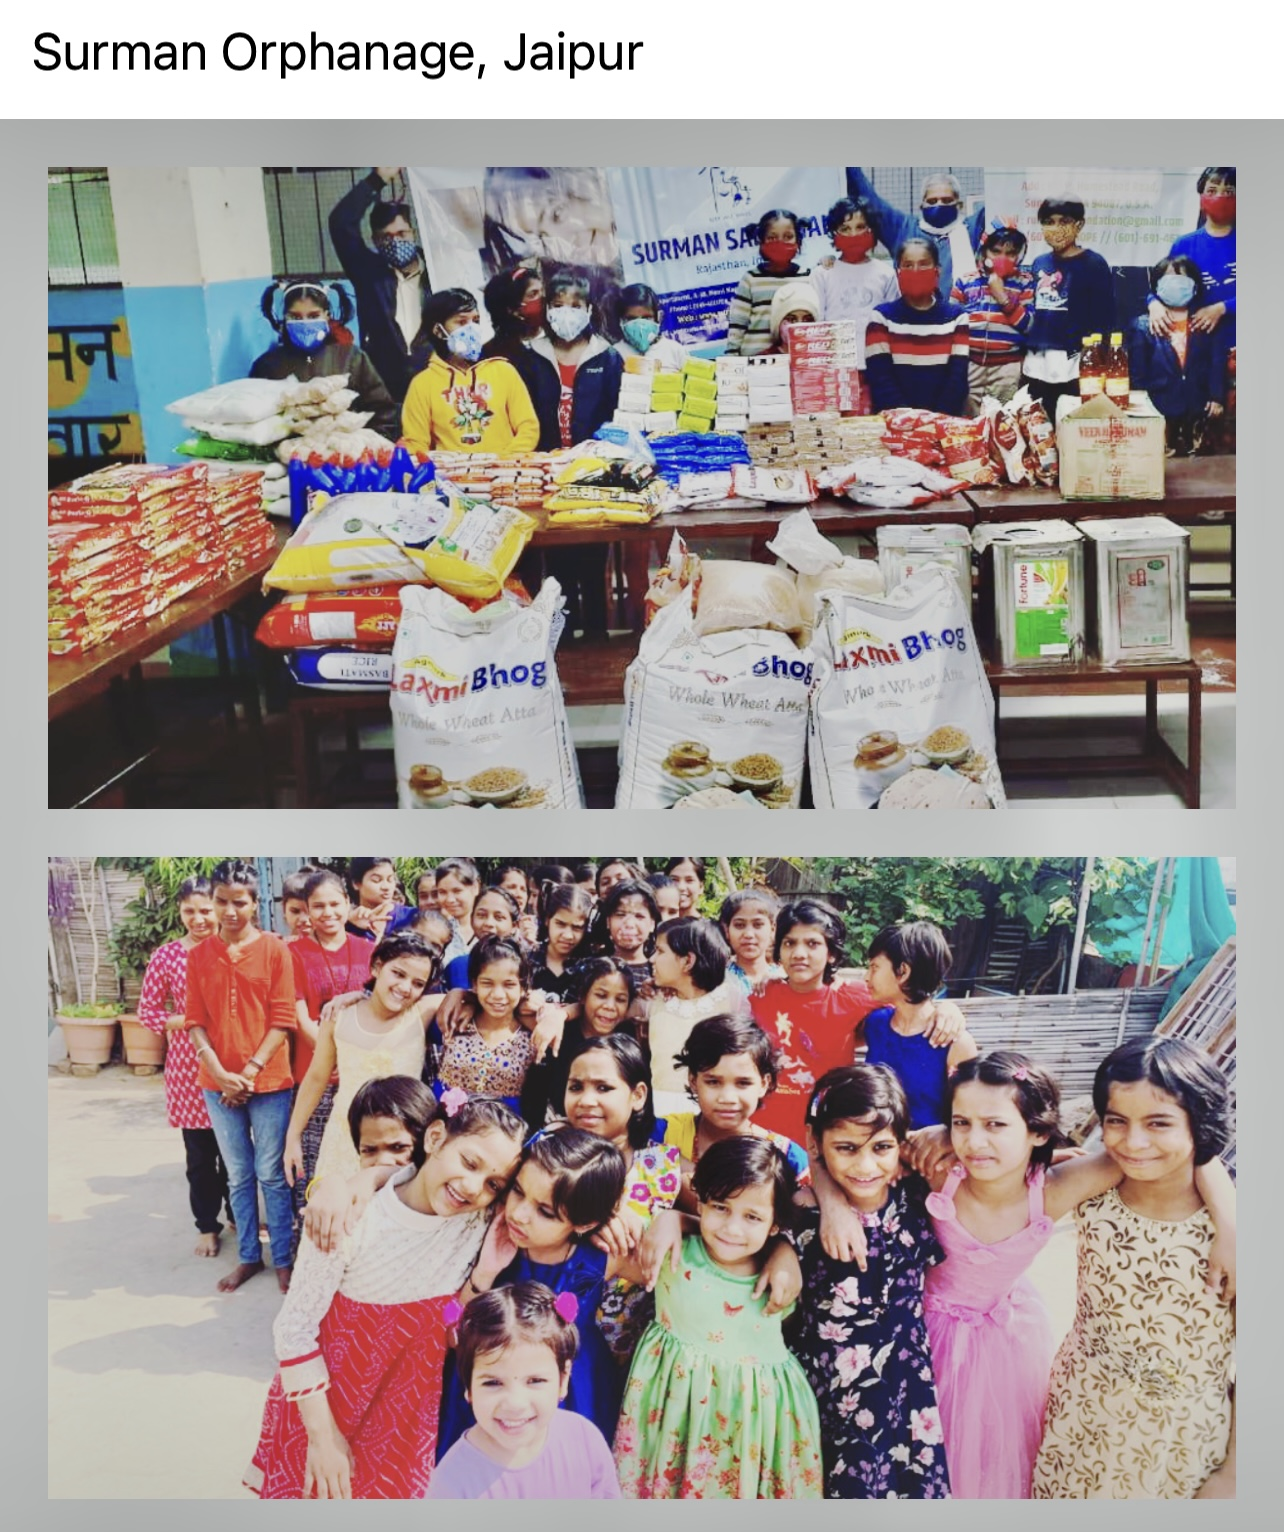 Orphanage support - groceries, clothes, books, facility upgrade